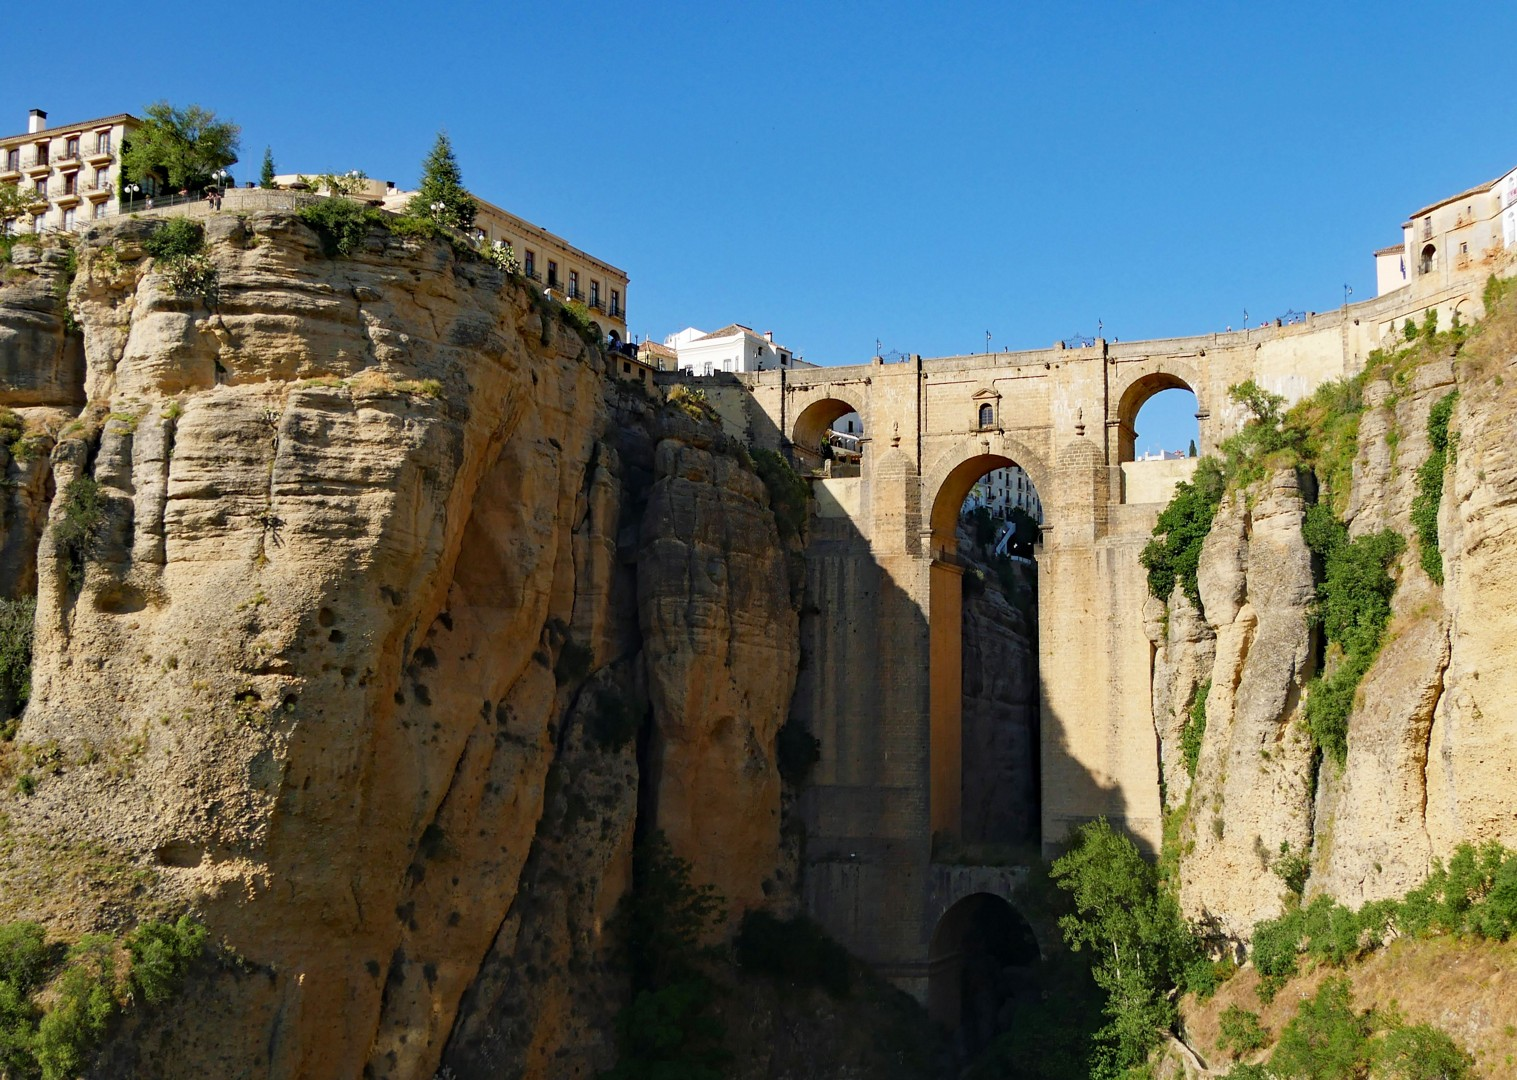 road-cycling-holiday-ronda-spain.jpg - Spain - Basque Country to Andalucia - North to South - 16 Day - Guided Road Cycling Holiday - Road Cycling